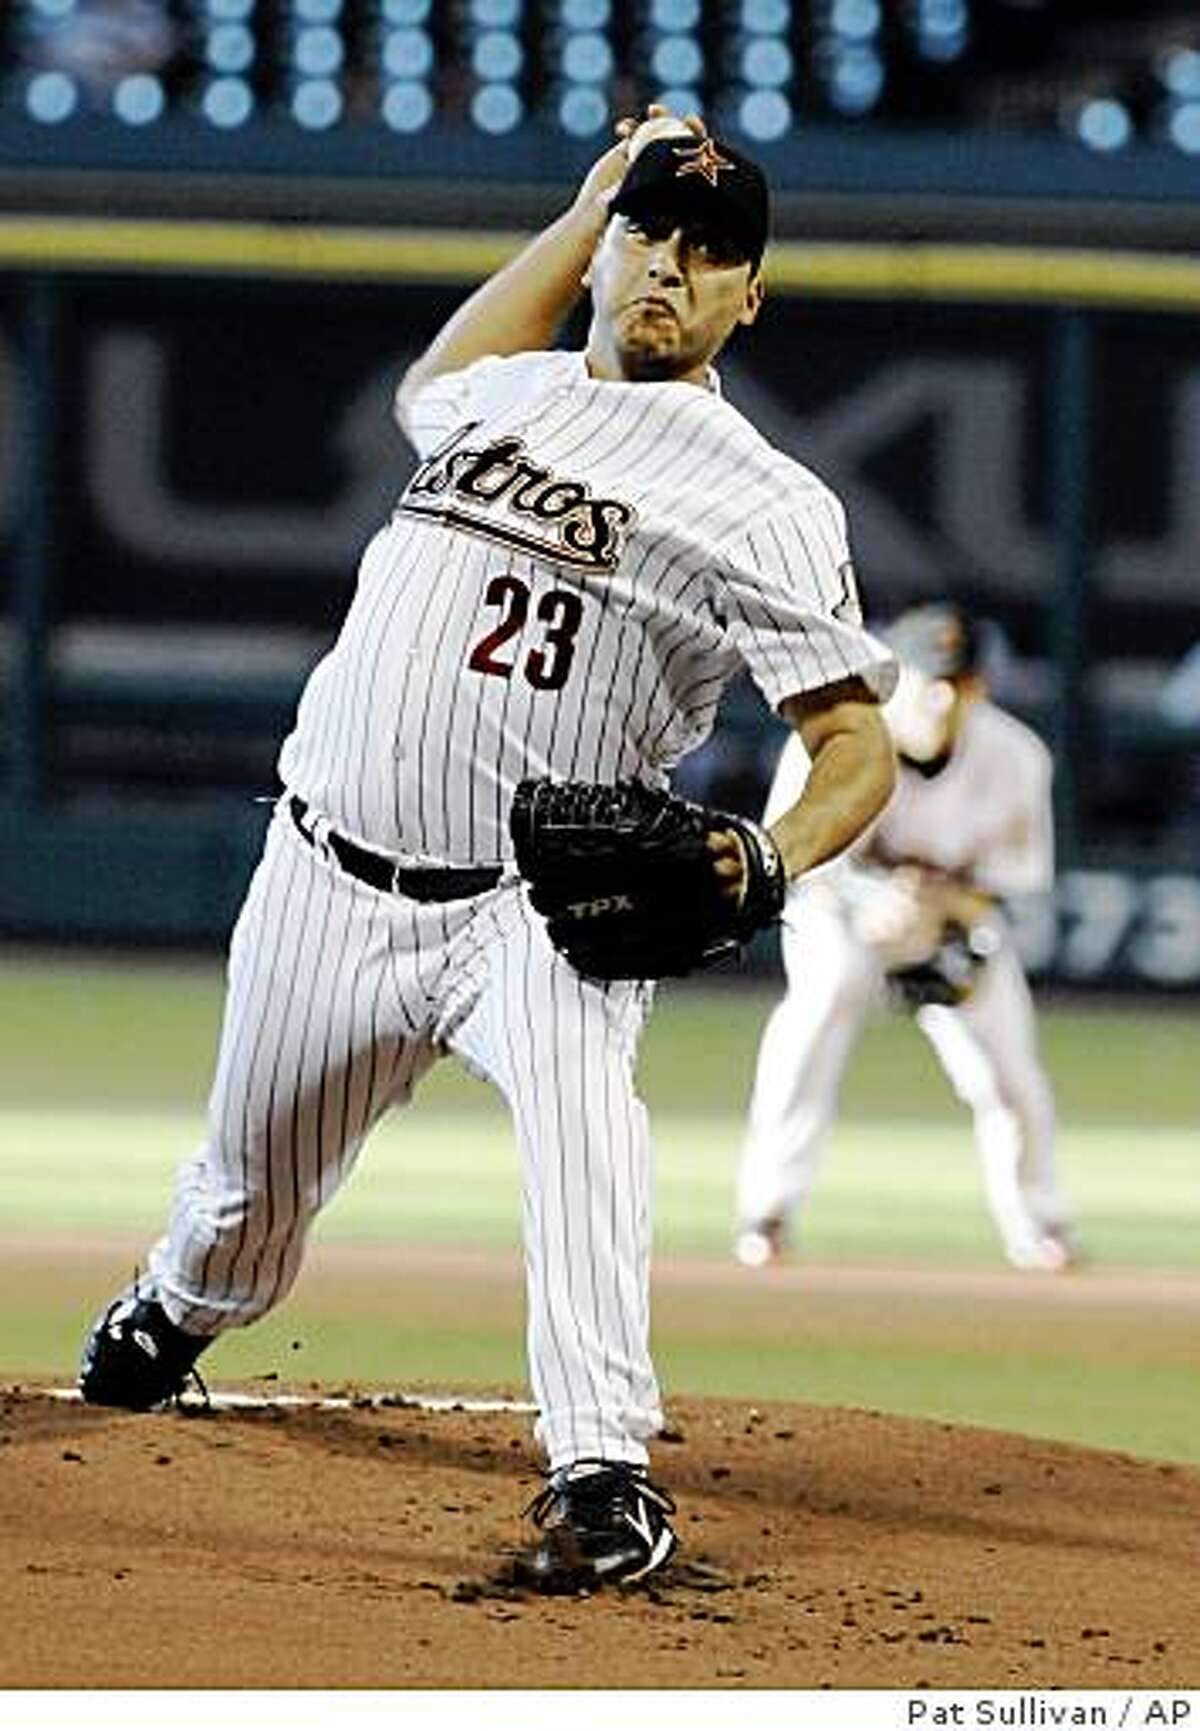 Houston Astros' Russ Ortiz delivers a pitch in the first inning against the Kansas City Royals in a baseball game Tuesday, June 23, 2009, in Houston. (AP Photo/Pat Sullivan)